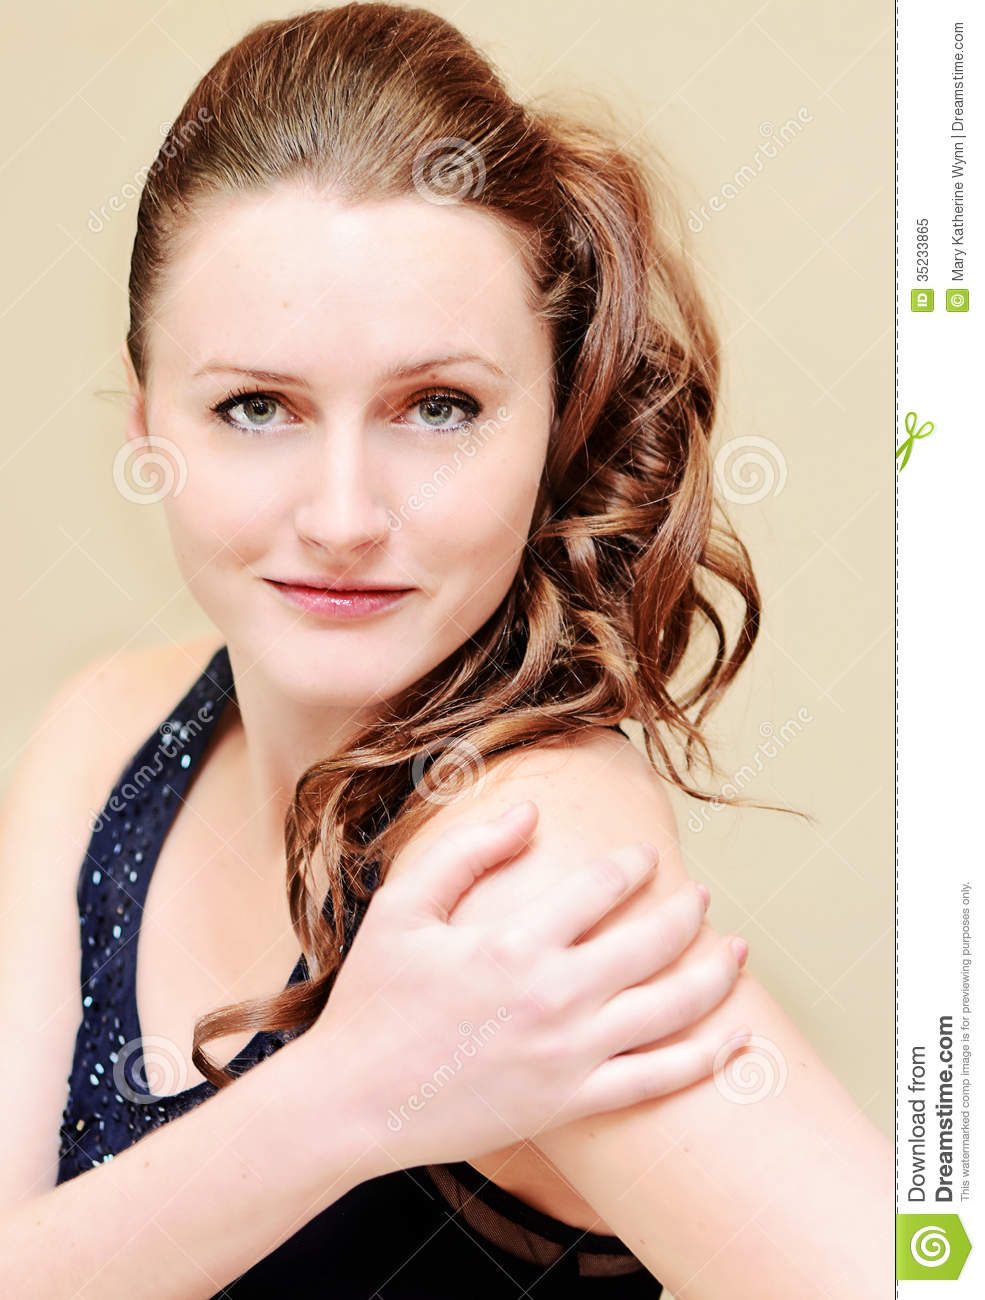 Model with side ponytail hairstyle